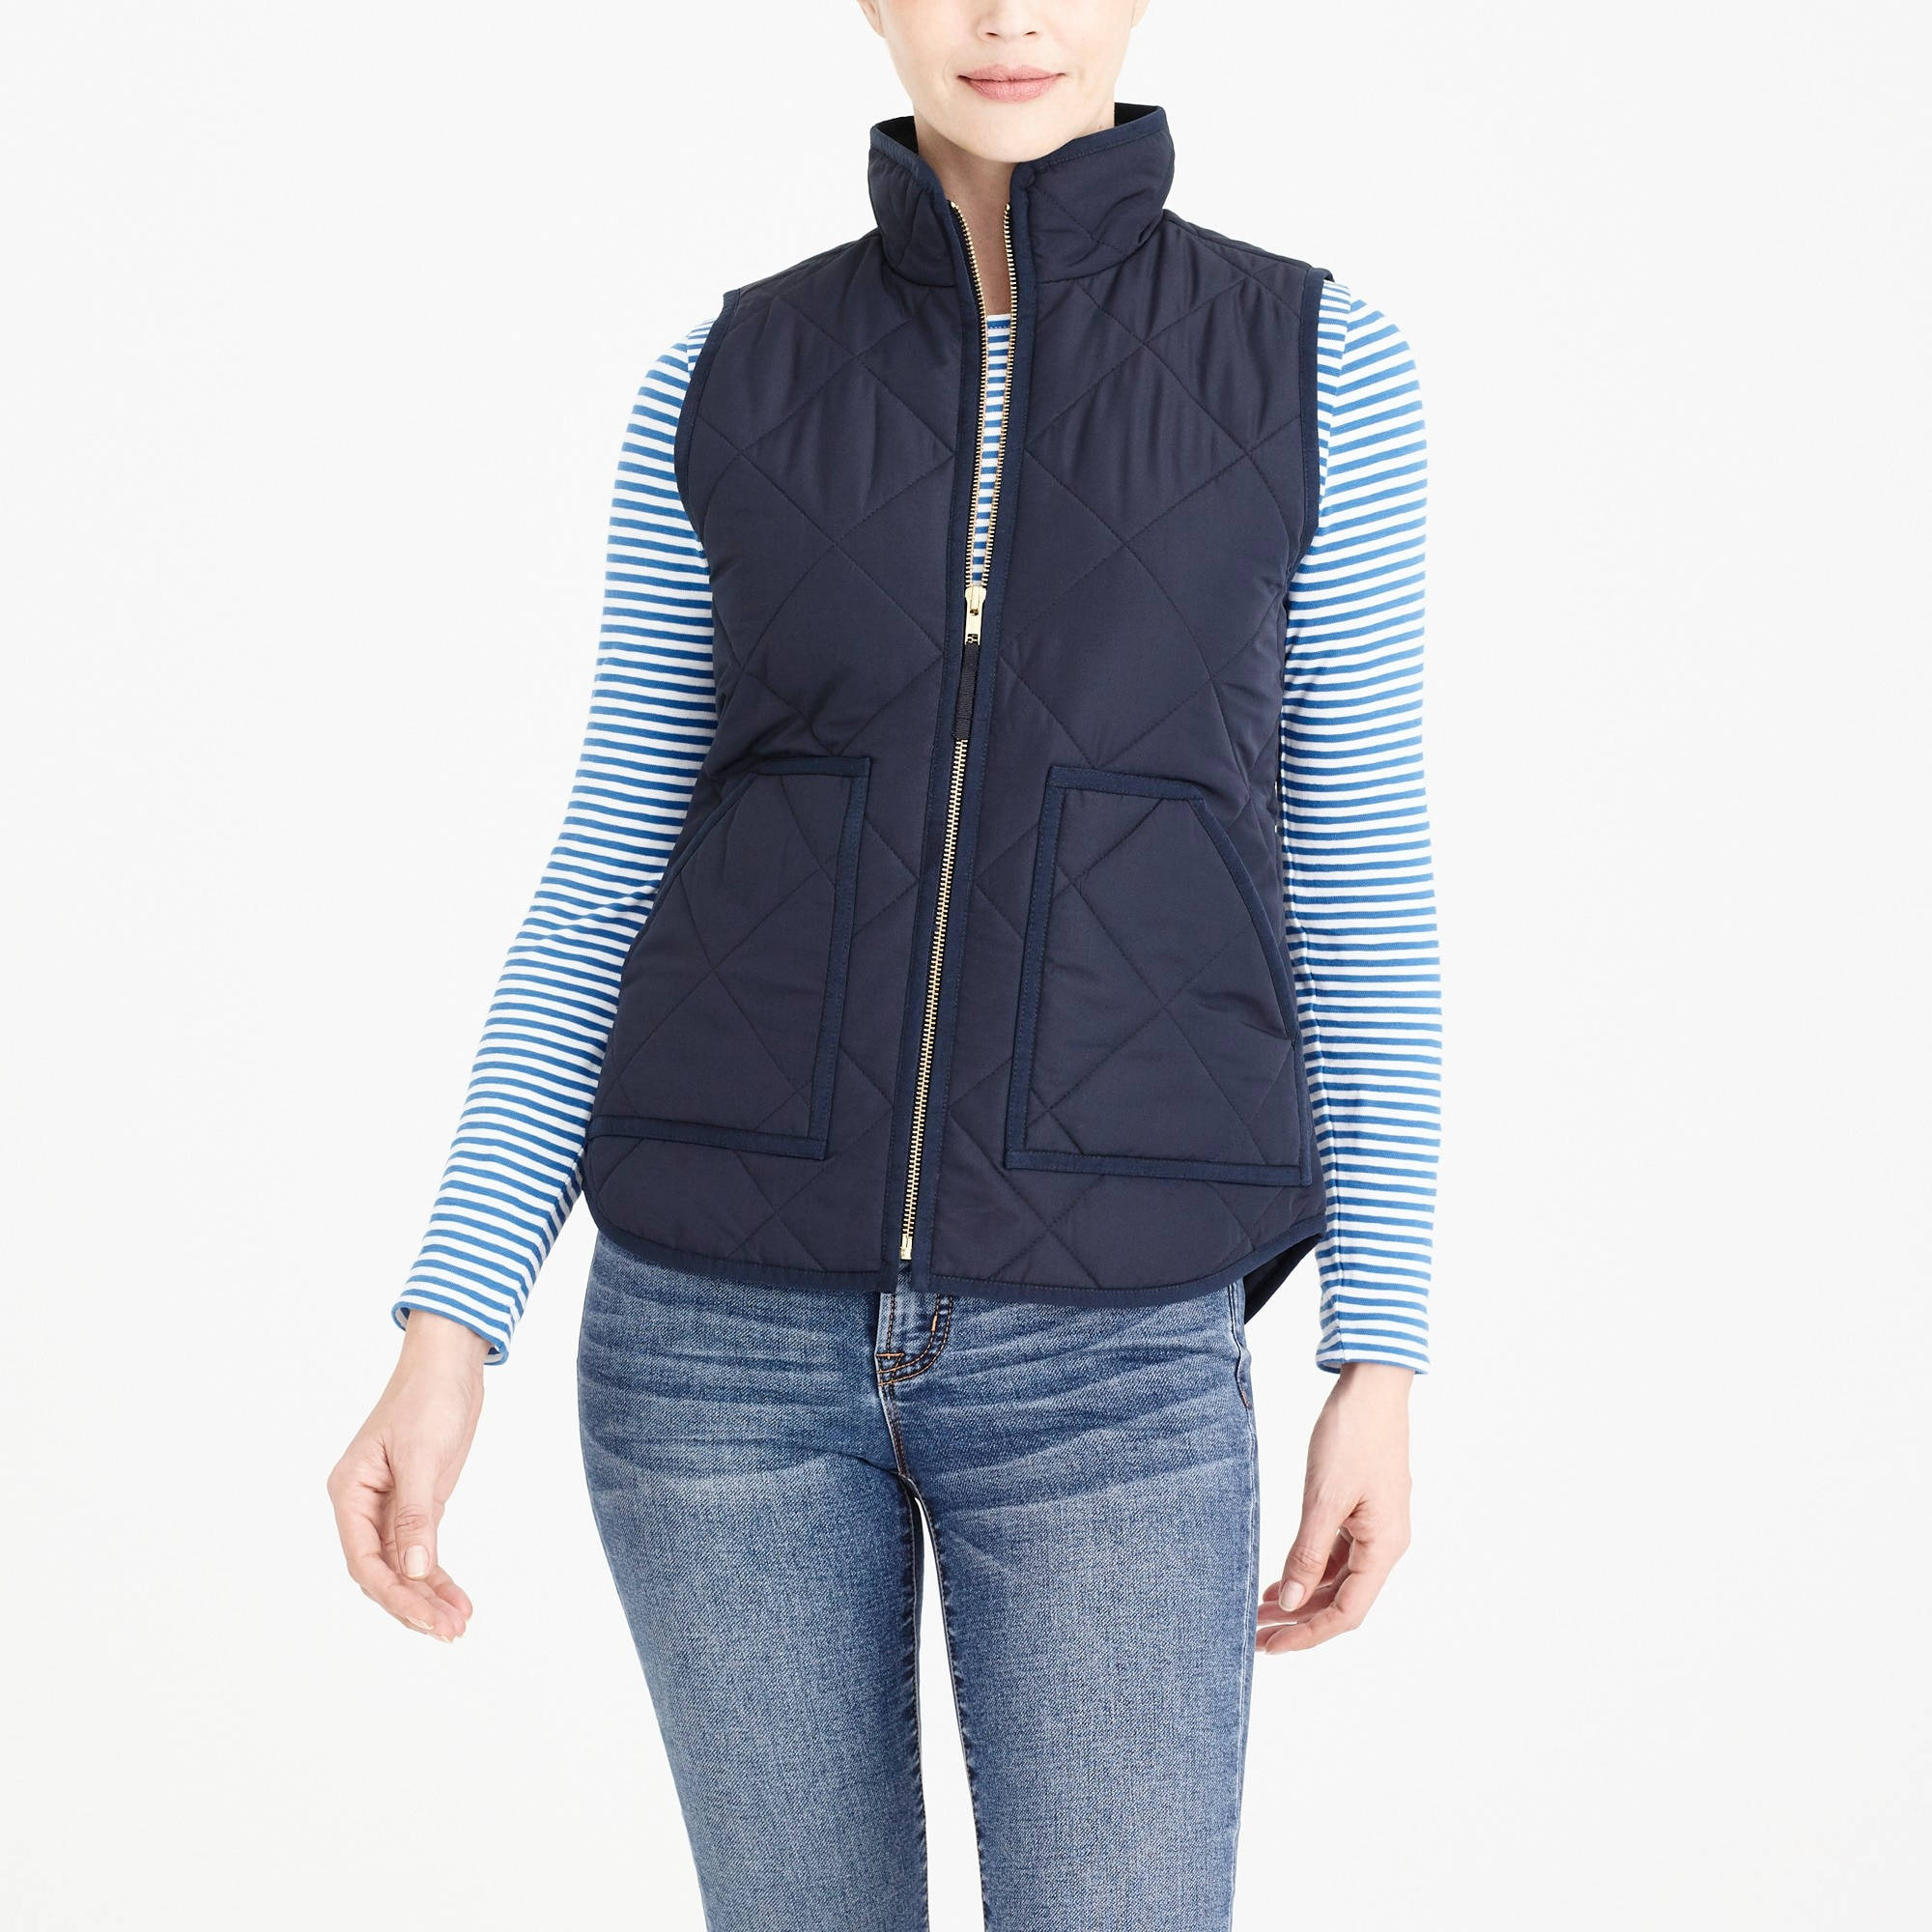 Image 1 for Quilted puffer vest